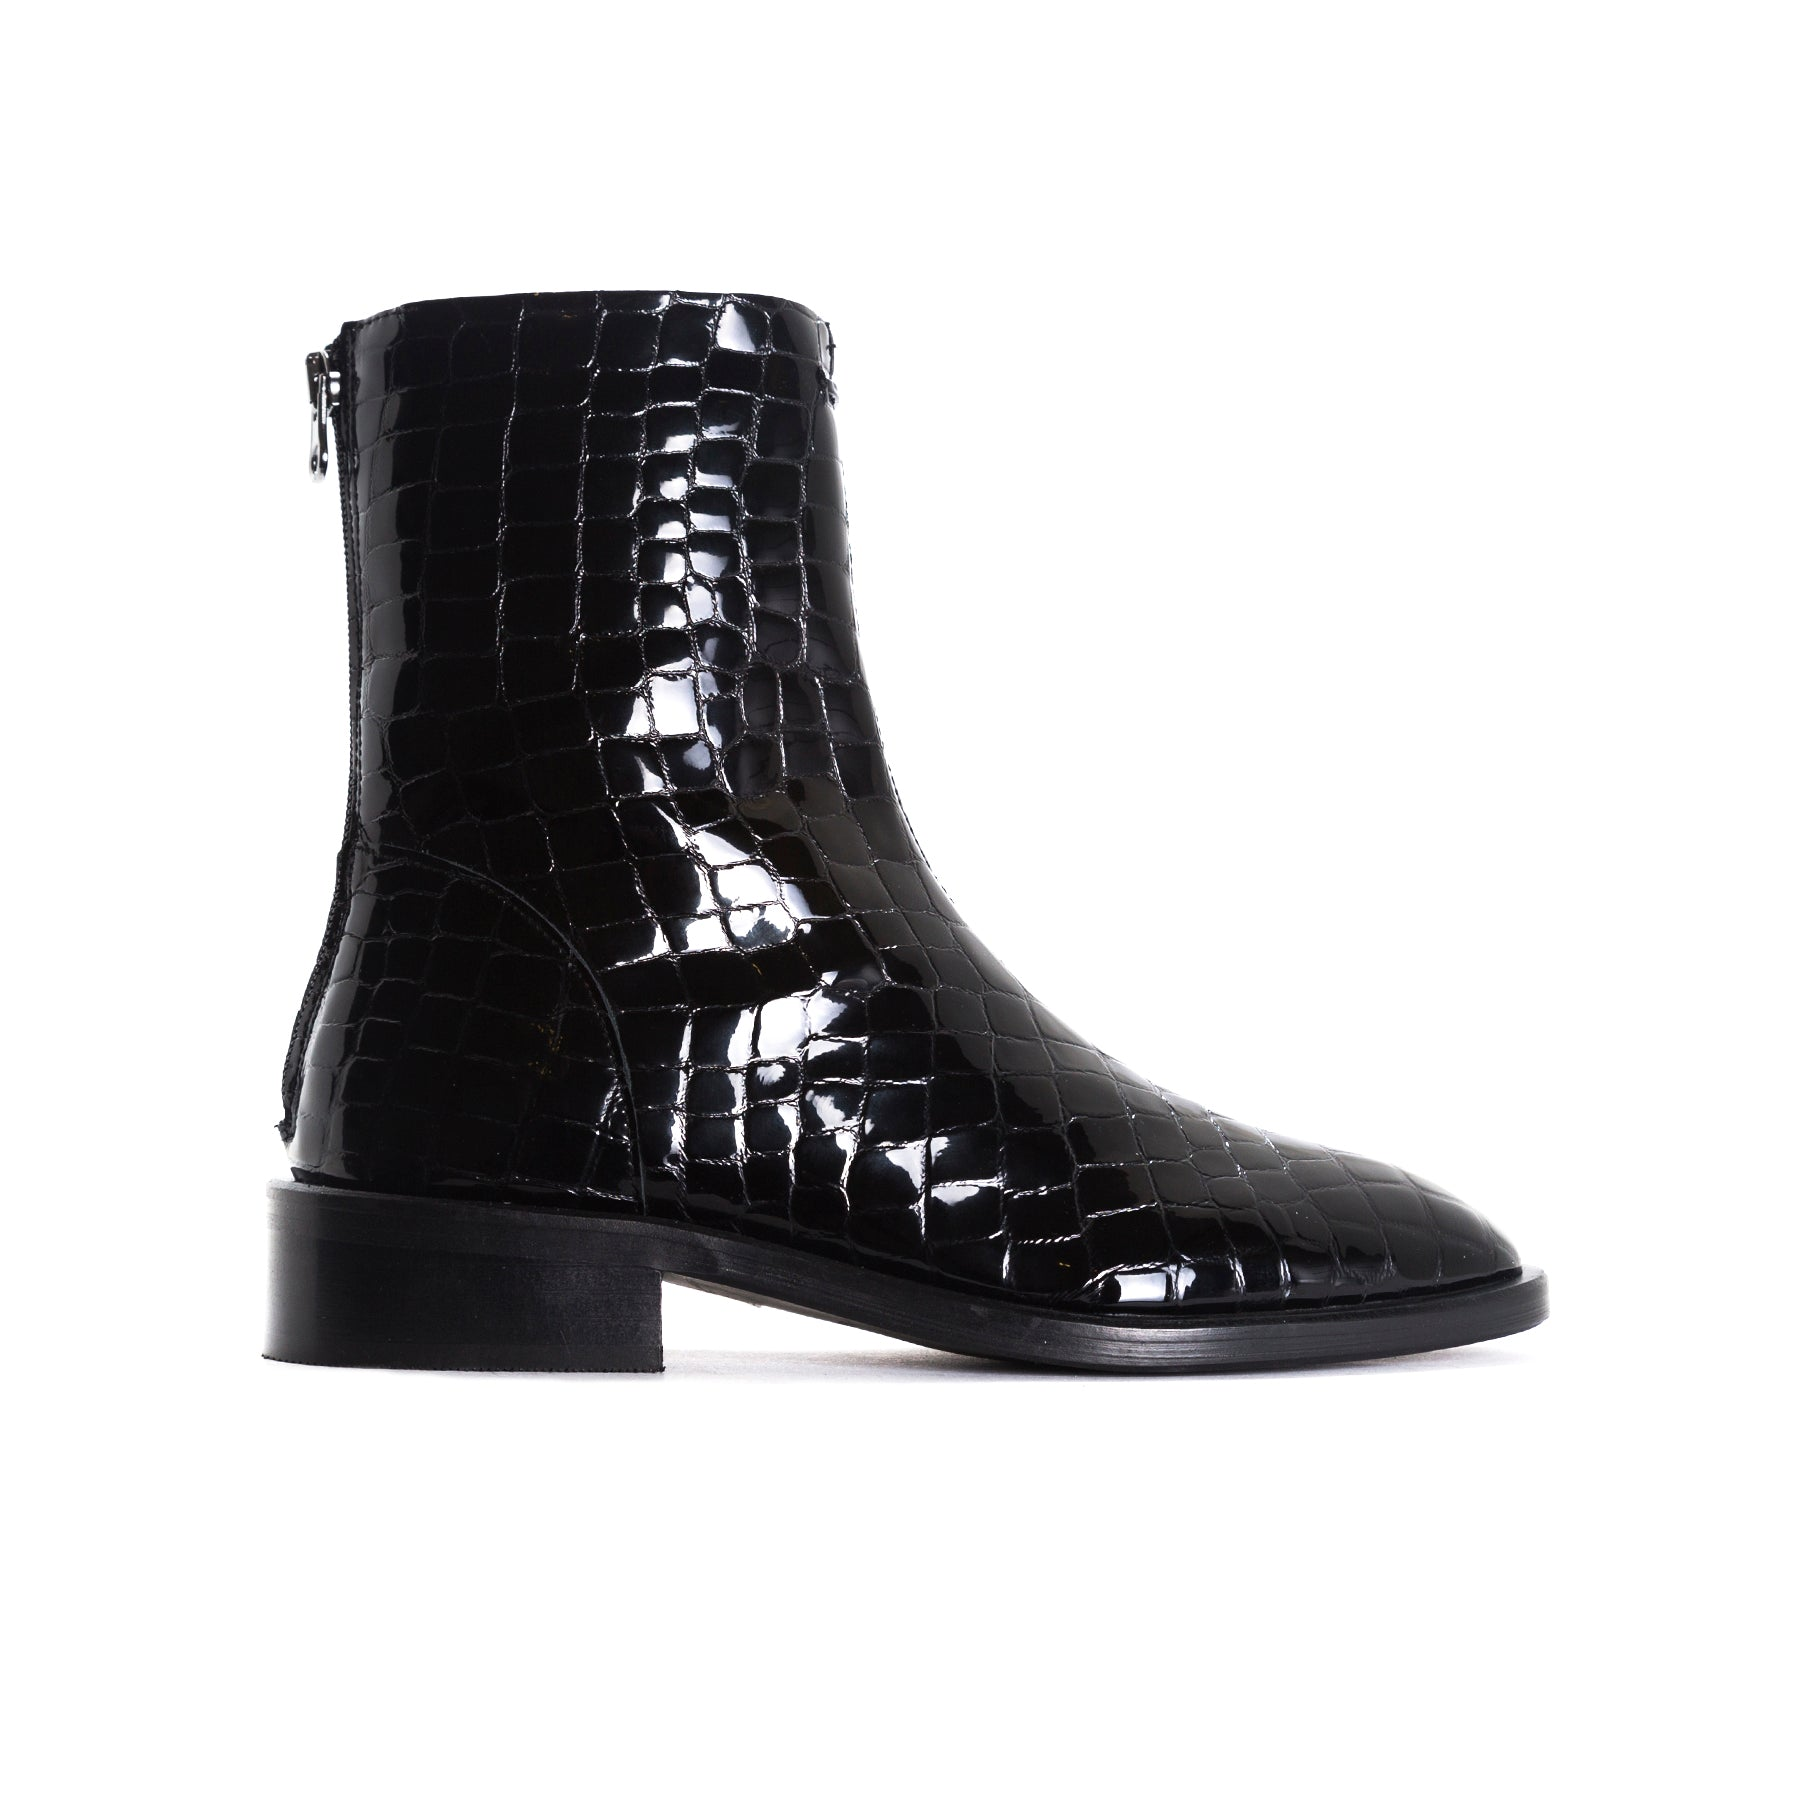 Dalton Black Croco Booties